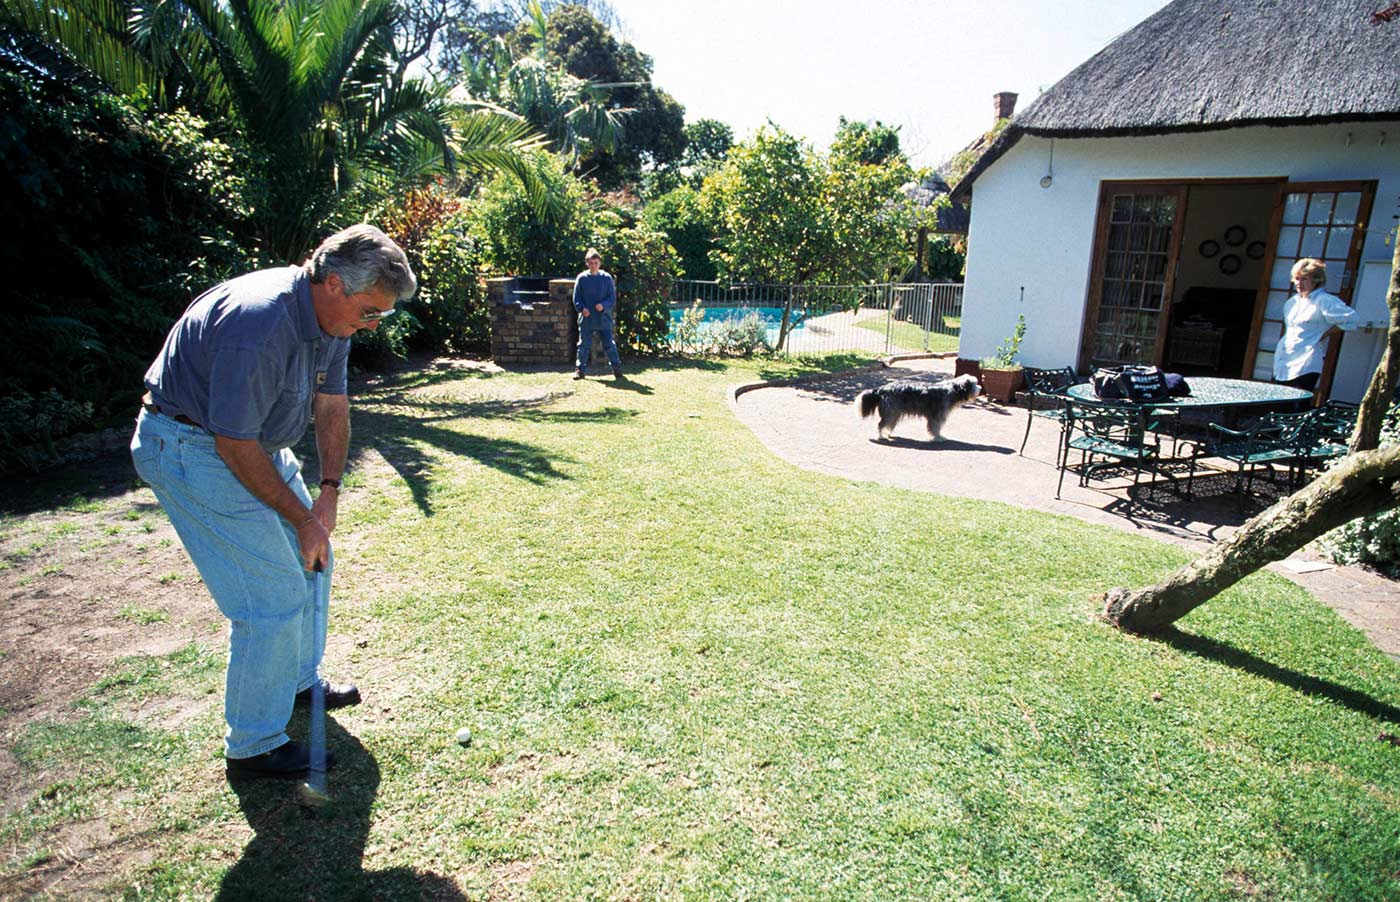 In happier times: Woolmer plays golf in the garden of his Cape Town home with his wife and son looking on